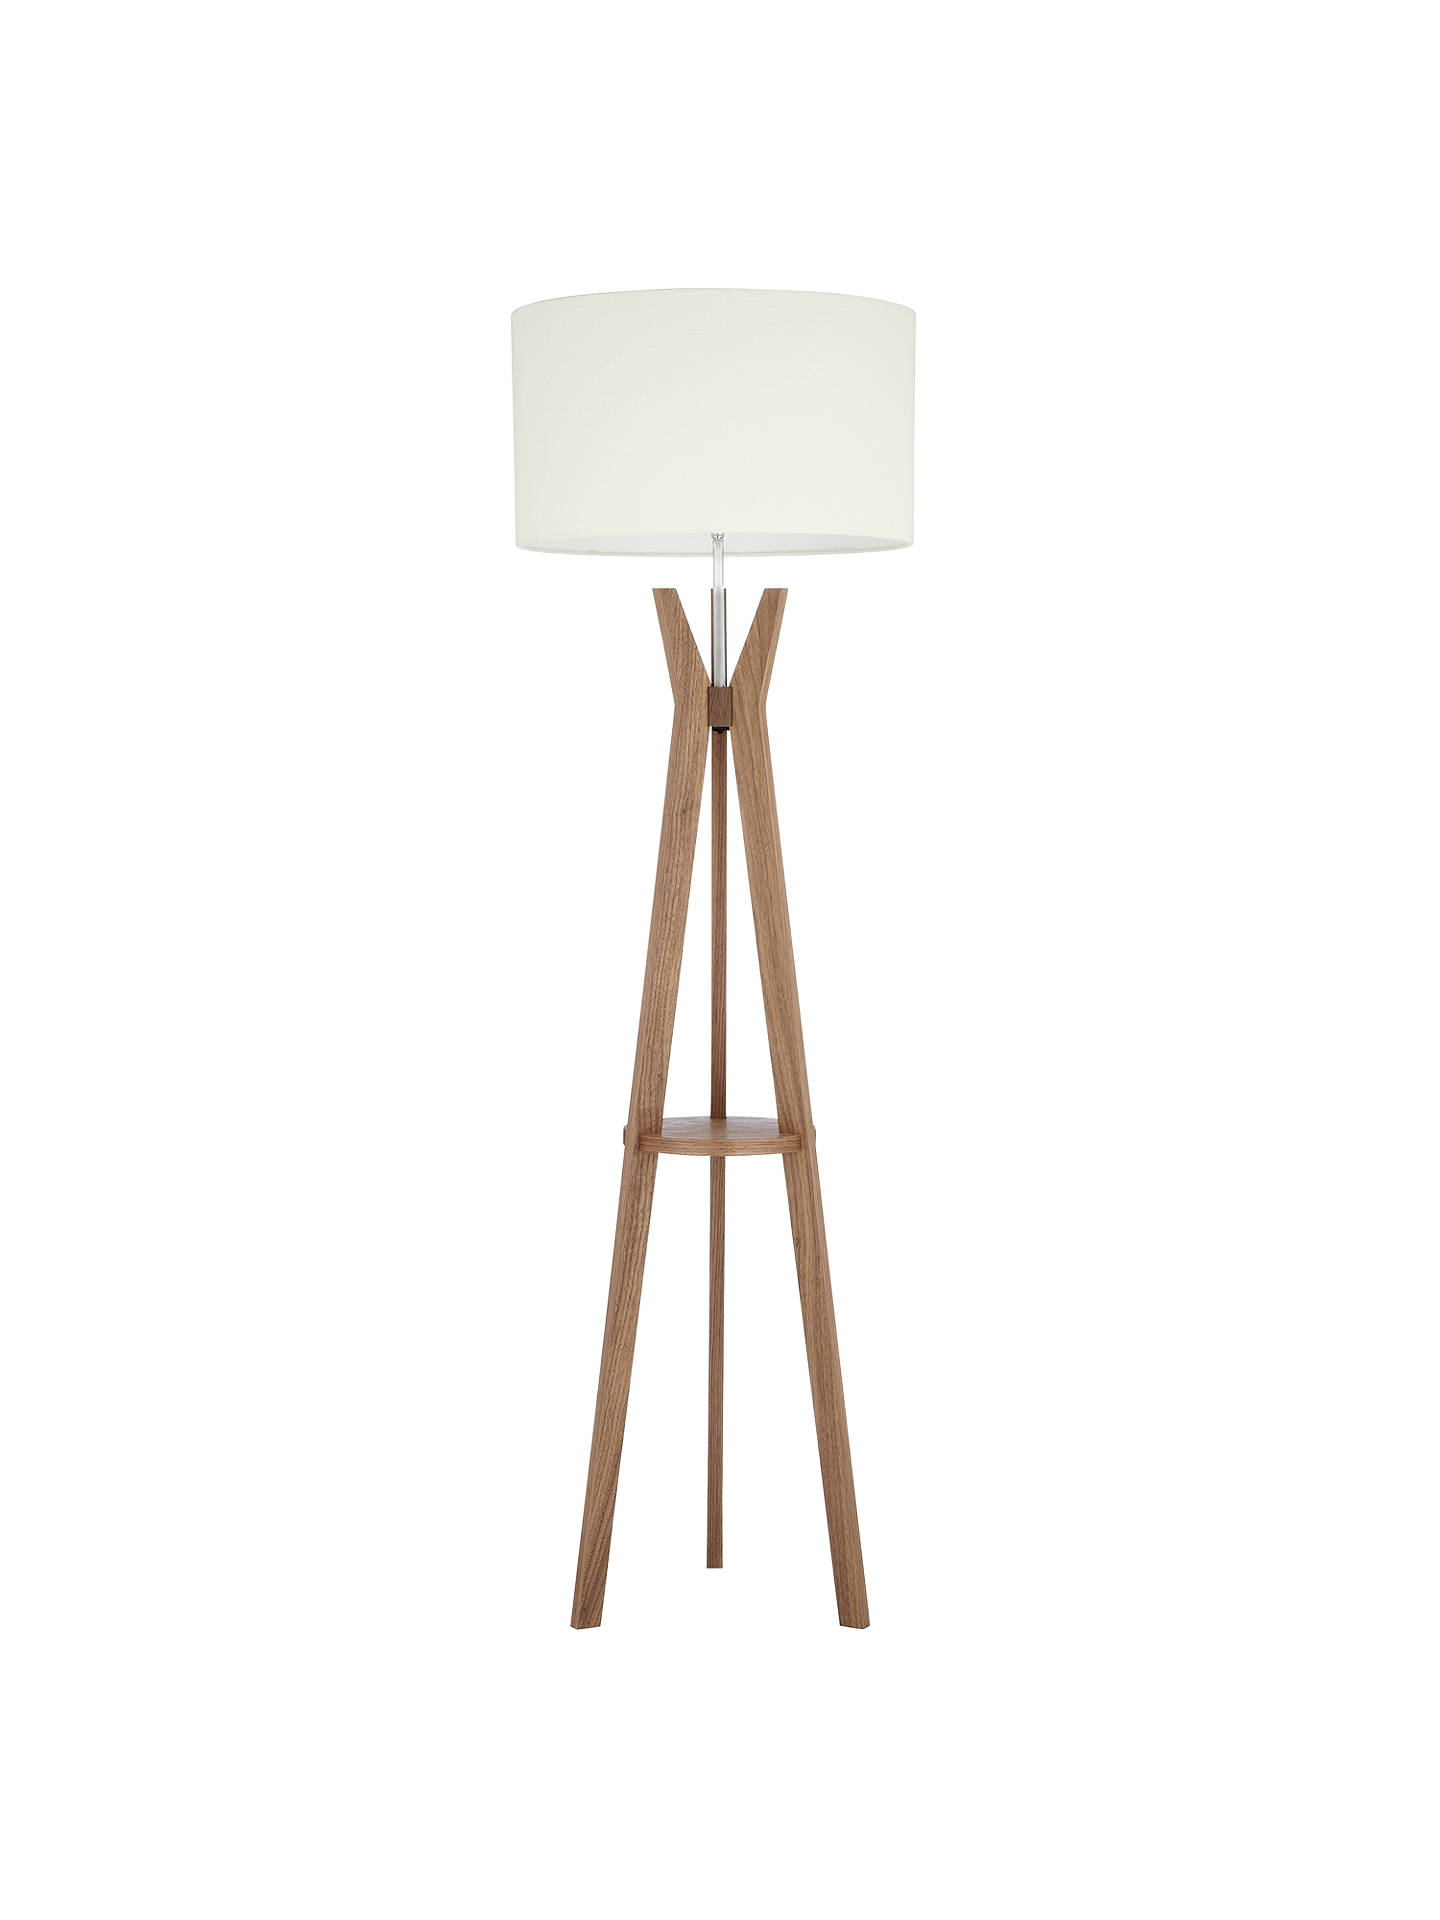 Buy Trafalgar Tripod Floor Lamp Online at johnlewis.com